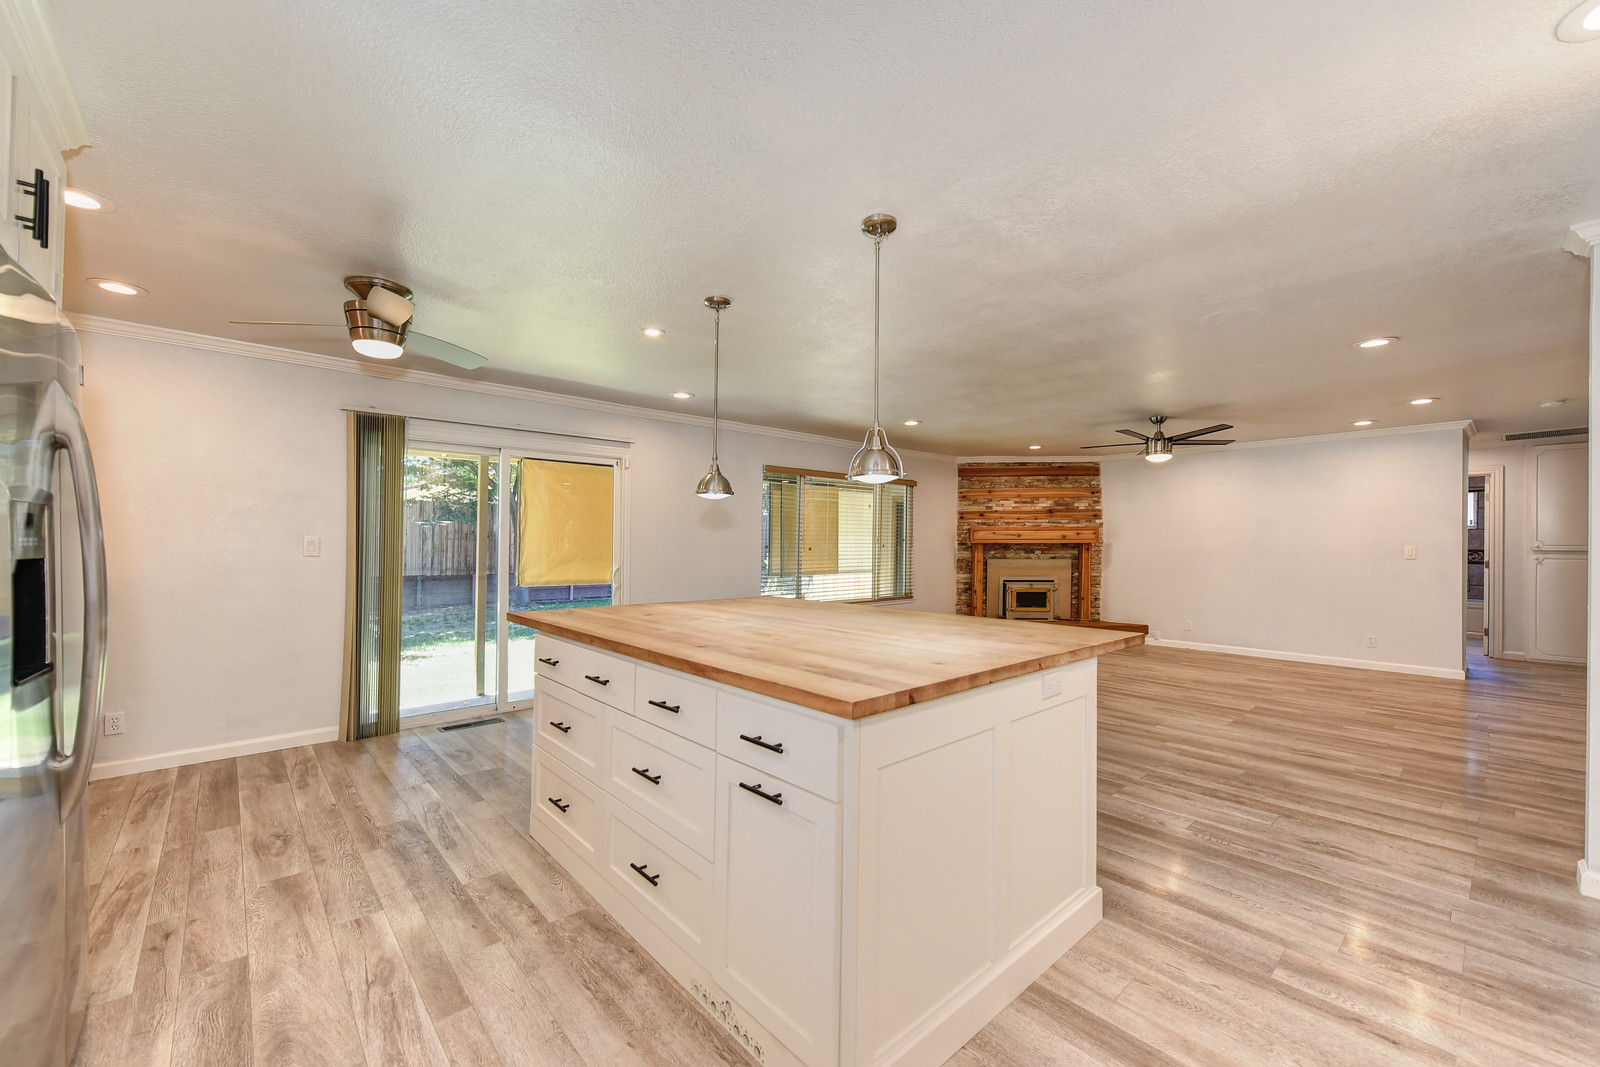 Realtor in Carmichael California | Remodeled kitchen 5342 Nyoda Way Carmichael California